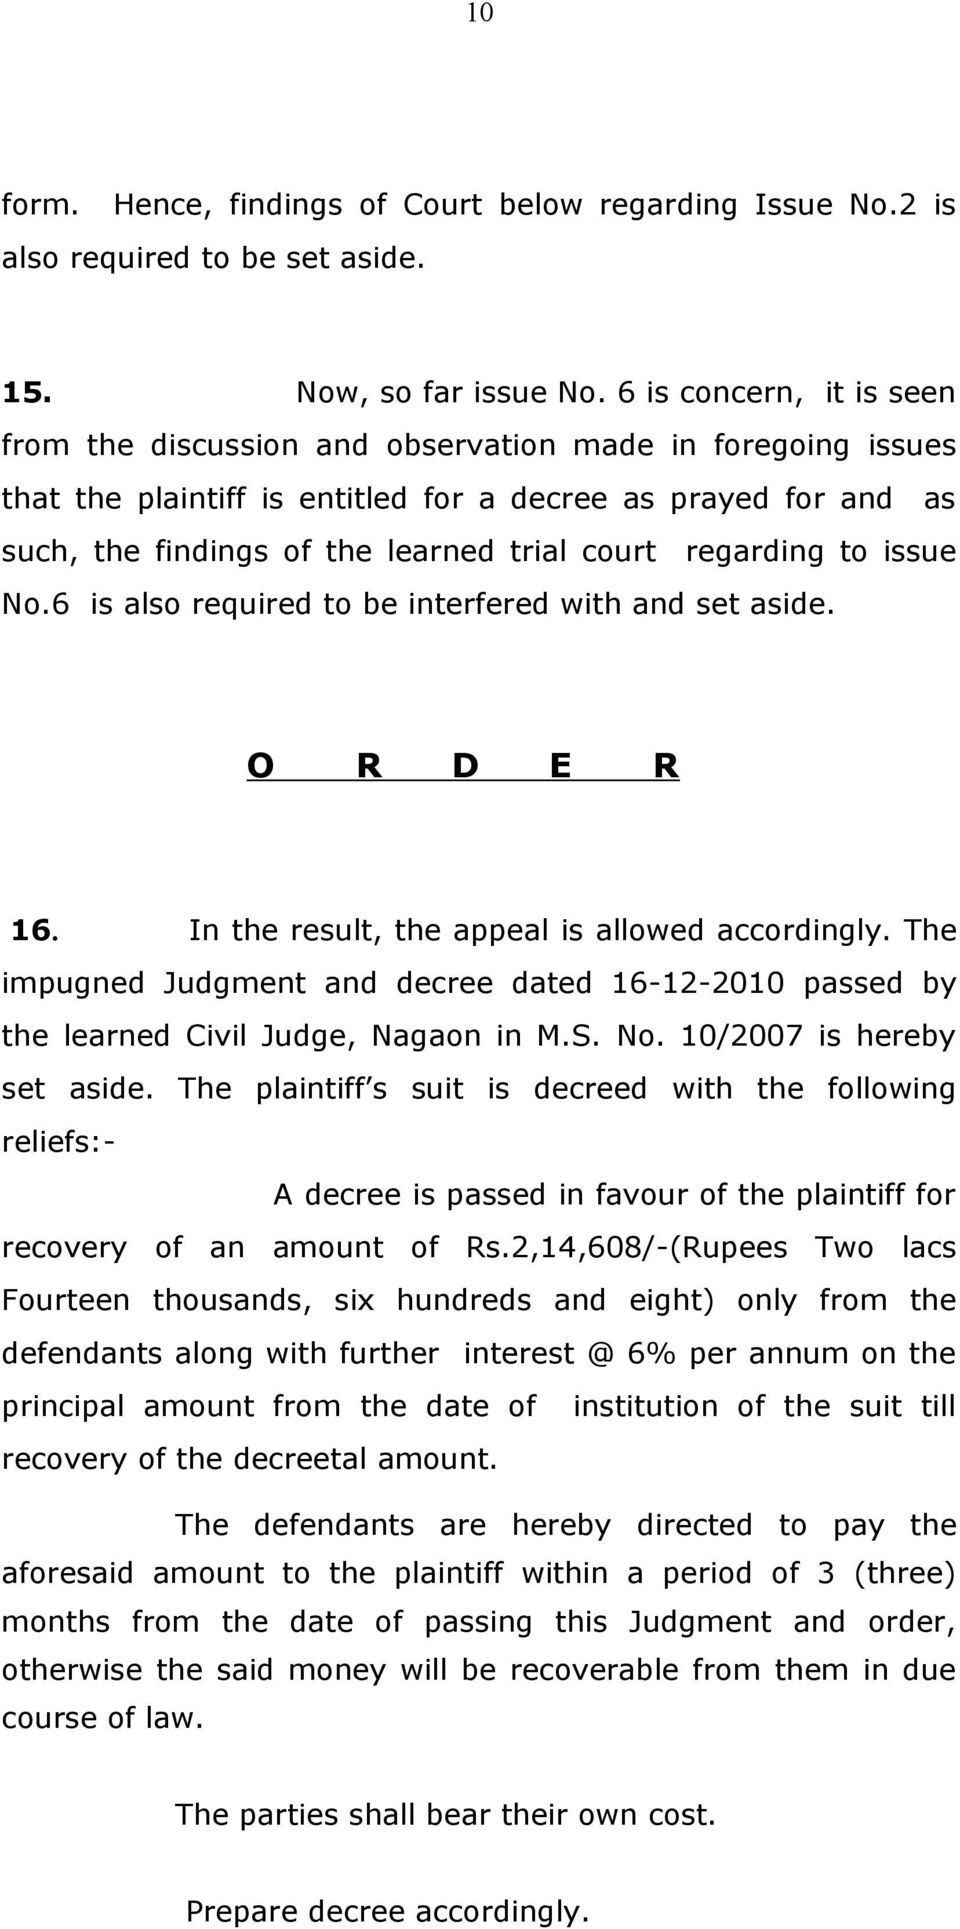 regarding to issue No.6 is also required to be interfered with and set aside. O R D E R 16. In the result, the appeal is allowed accordingly.